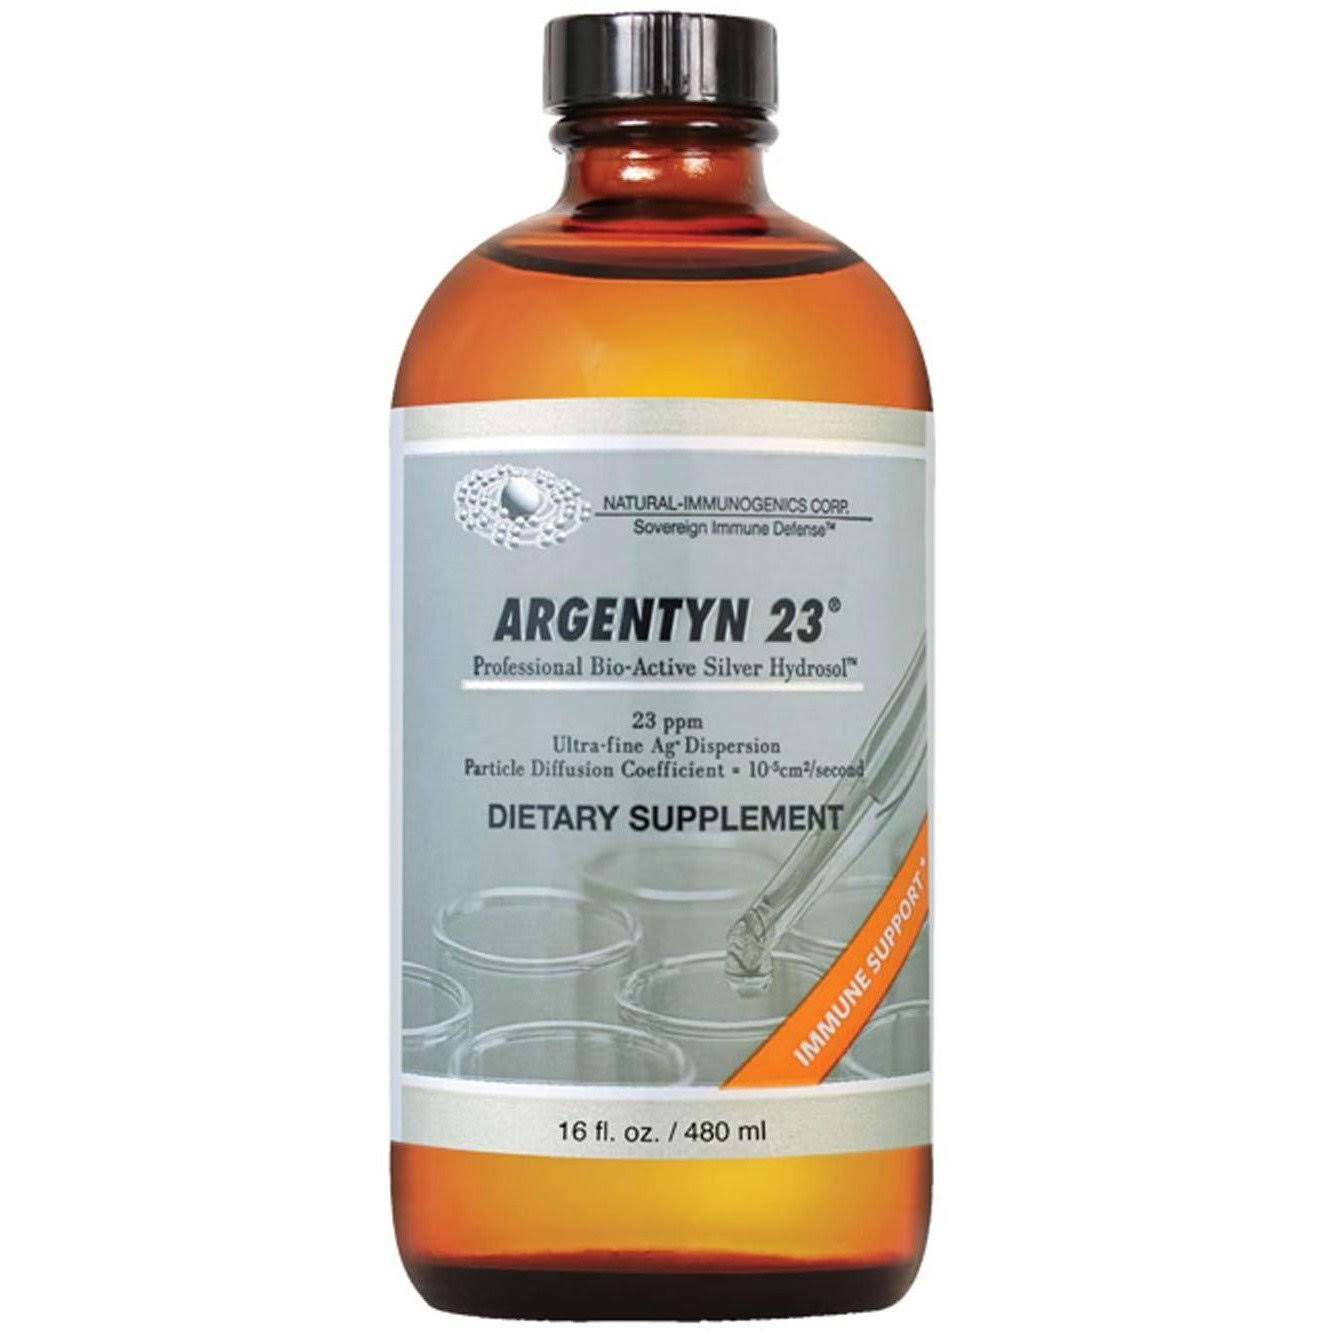 Natural-Immunogenics Argentyn 23 Dietary Supplement - 16oz